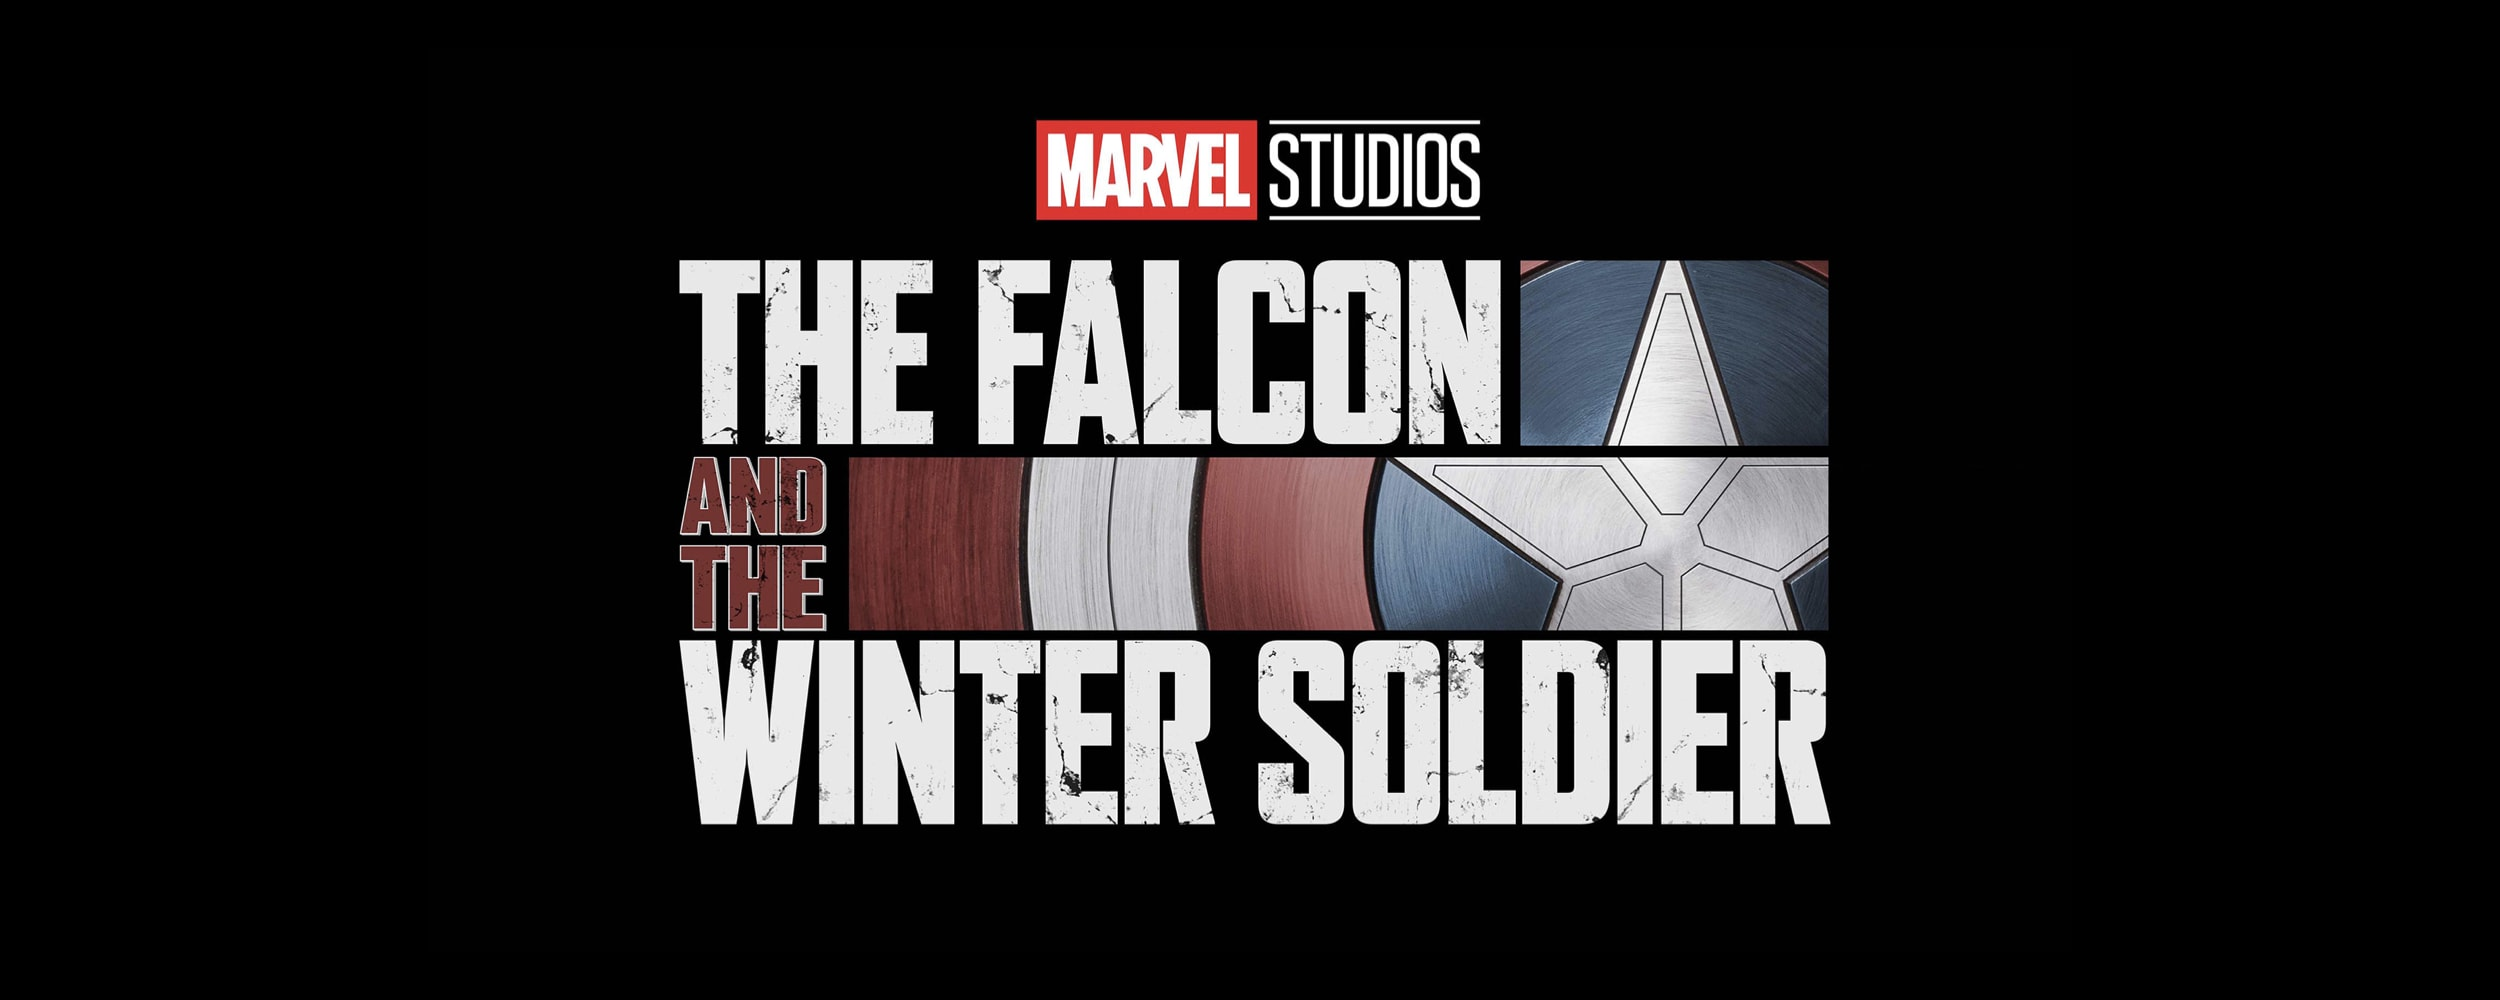 The Falcon and The Winter Soldier Media Kit